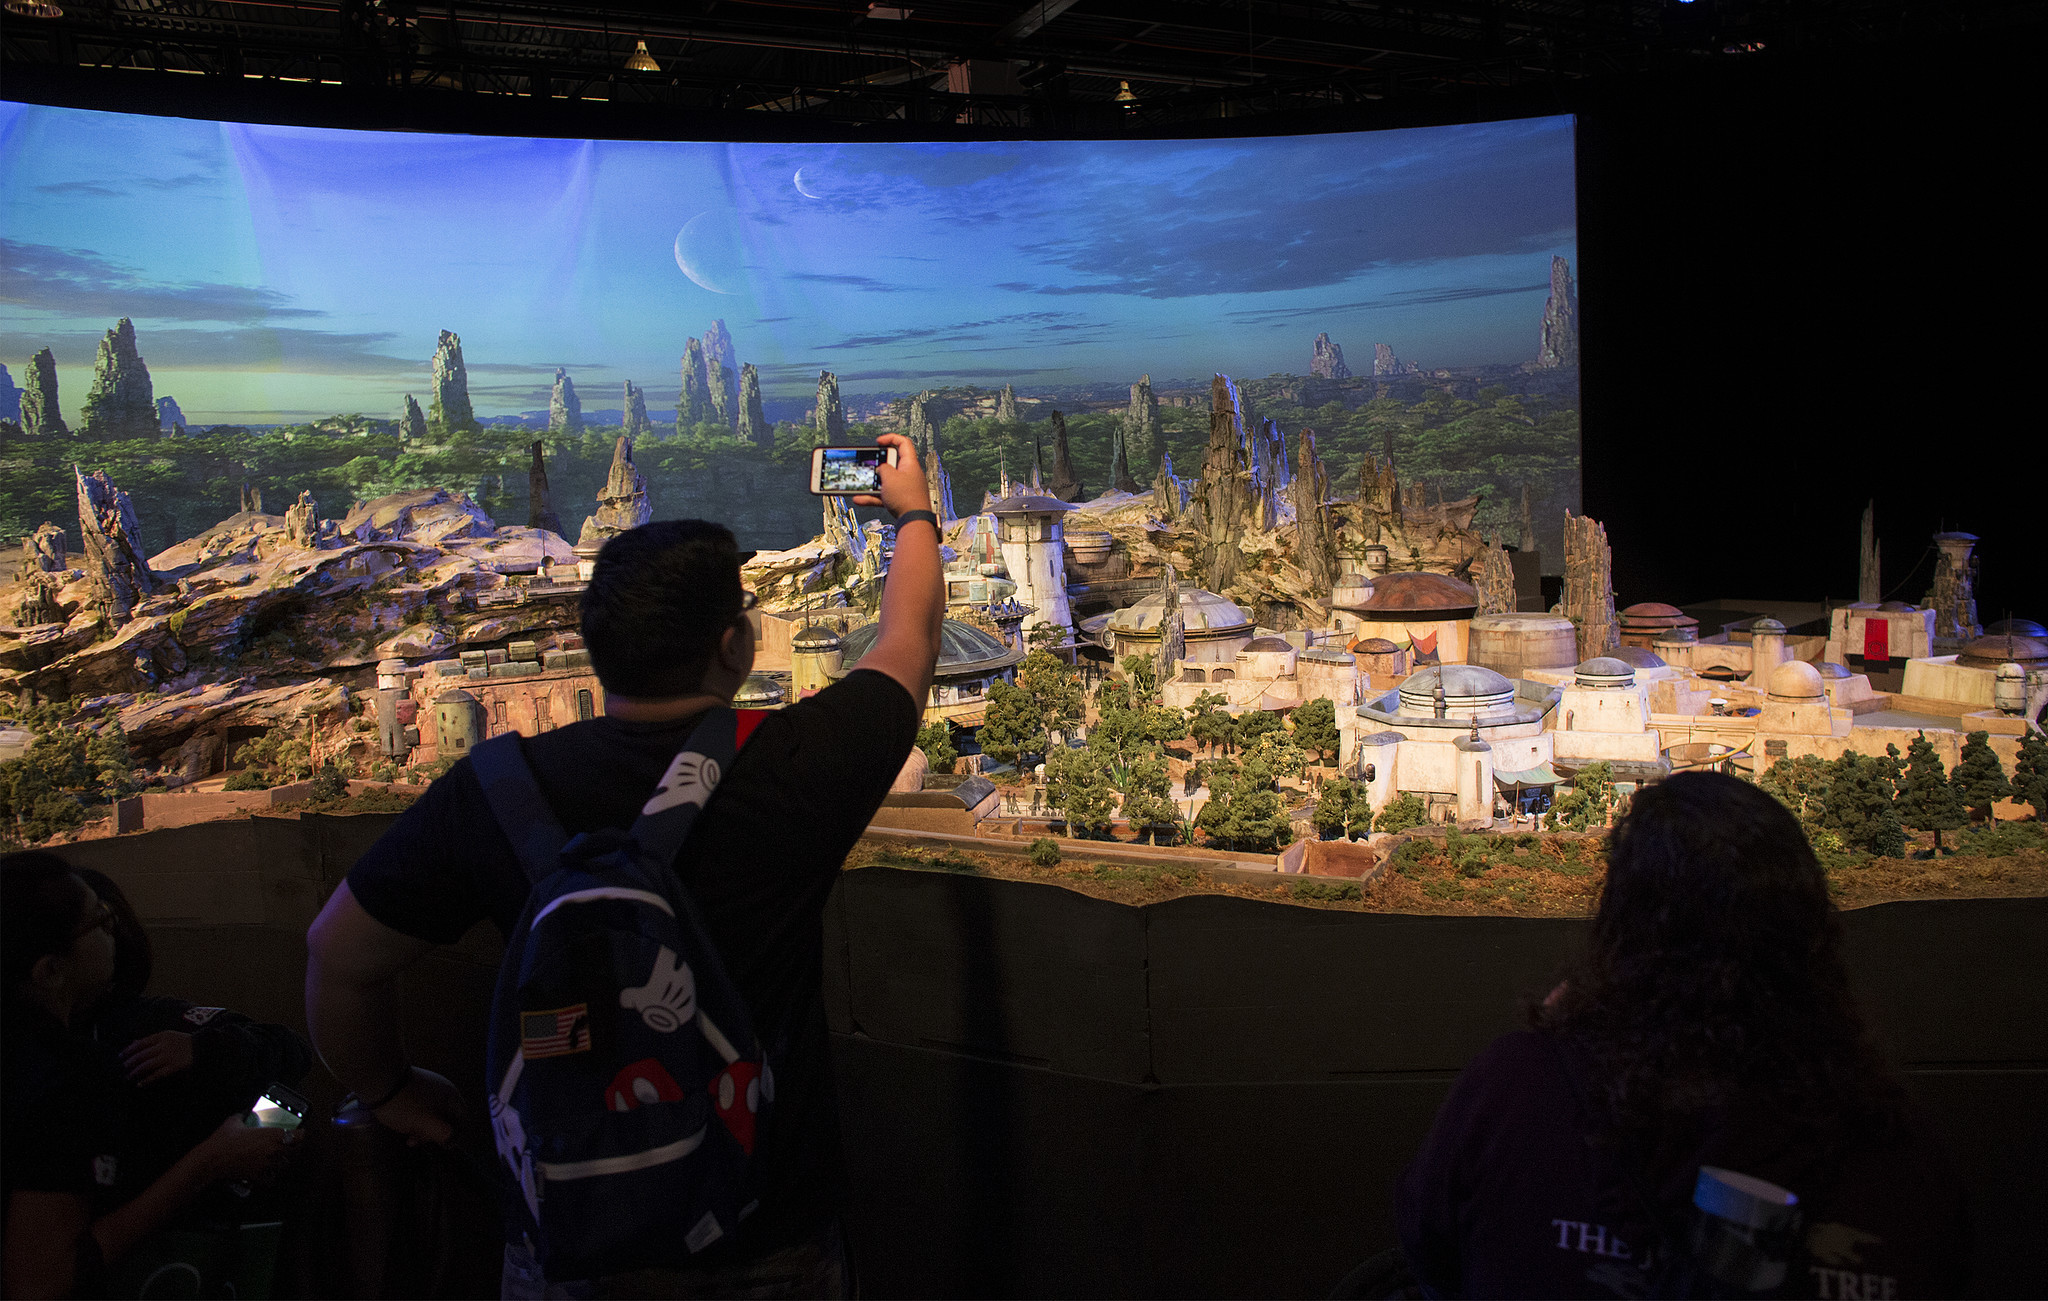 Fans get a preview of stars wars galaxy s edge a new area under construction at disneyland the model was shown at the d23 expo in july